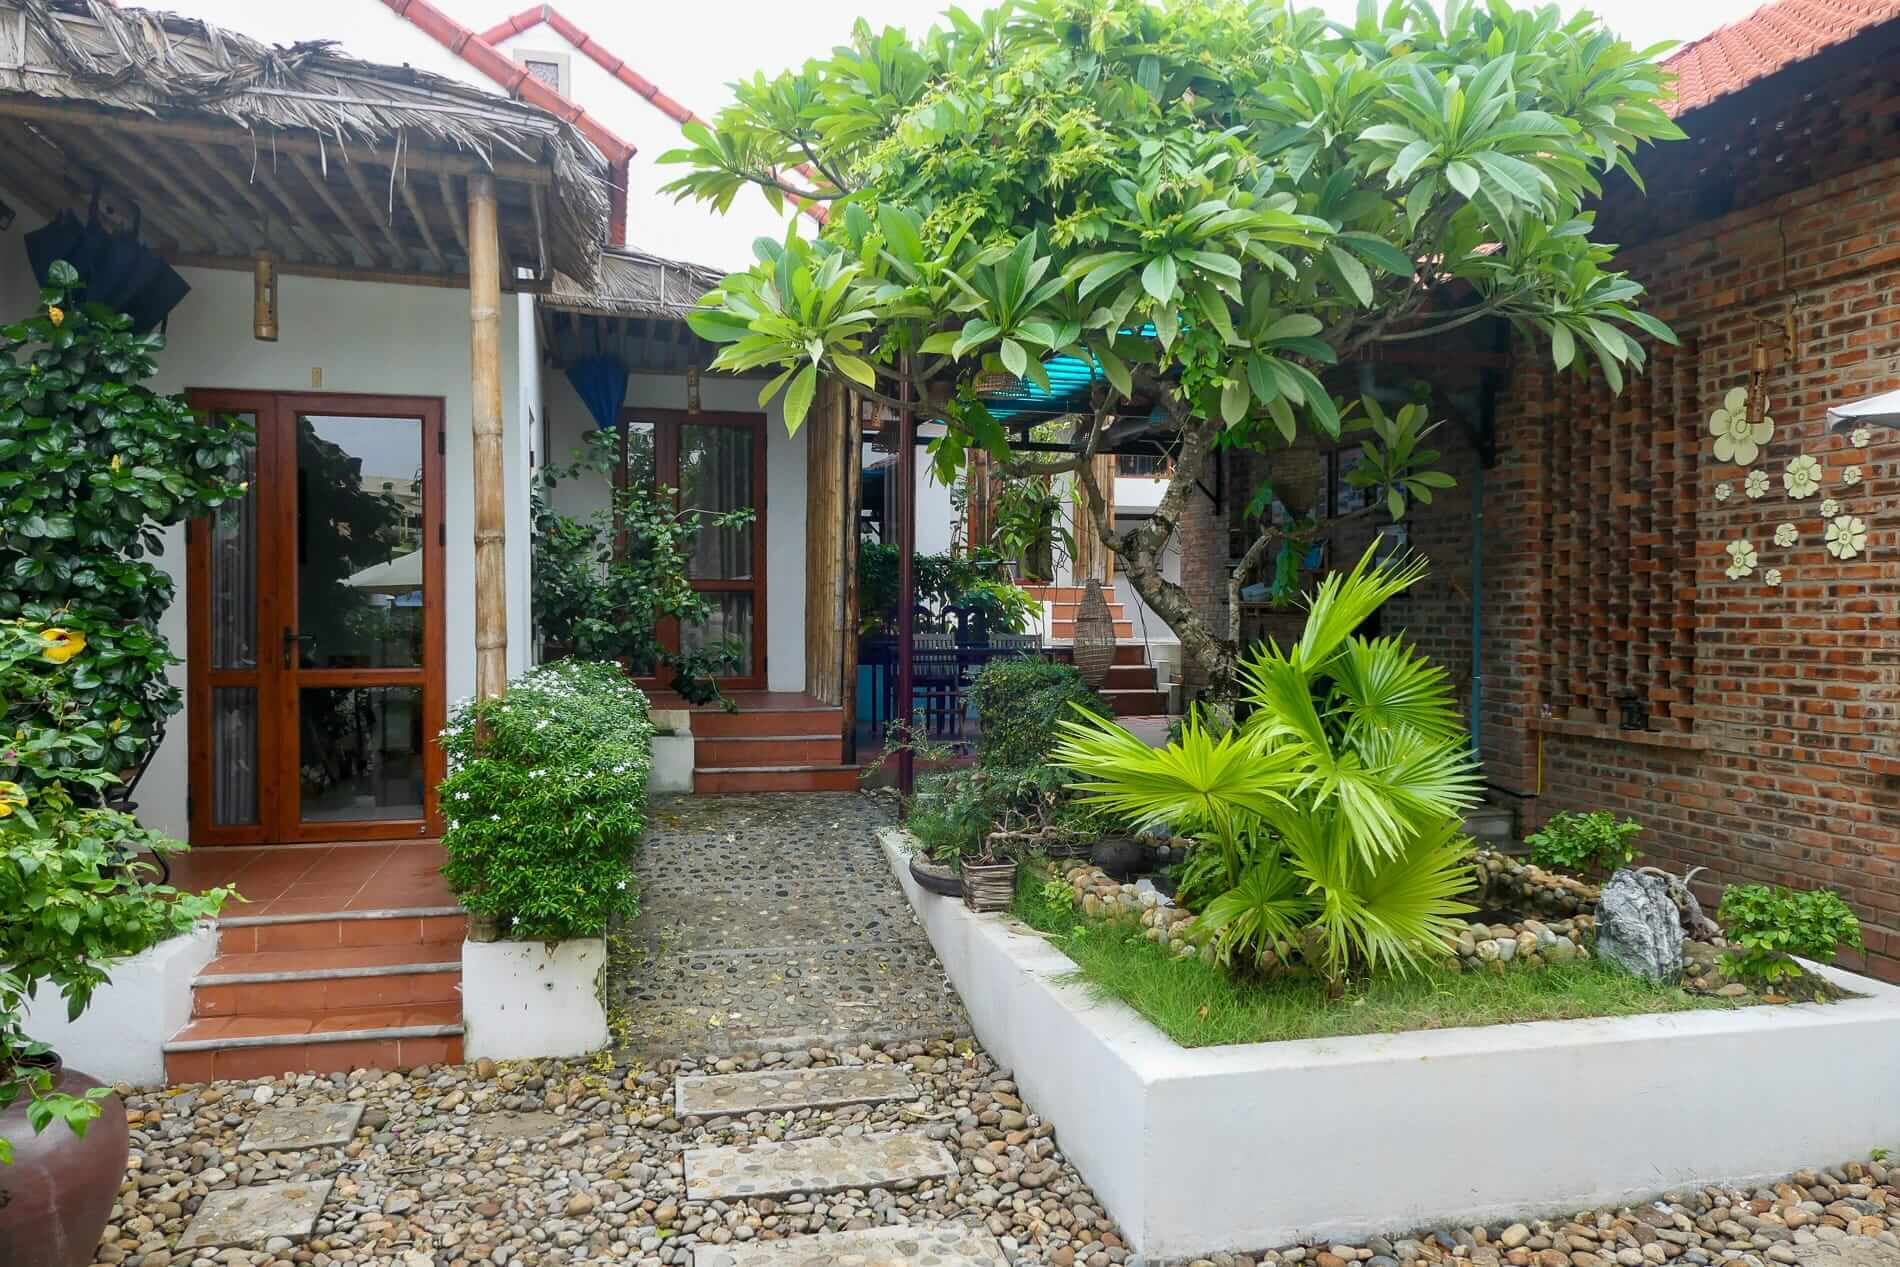 Private bungalows in a garden setting